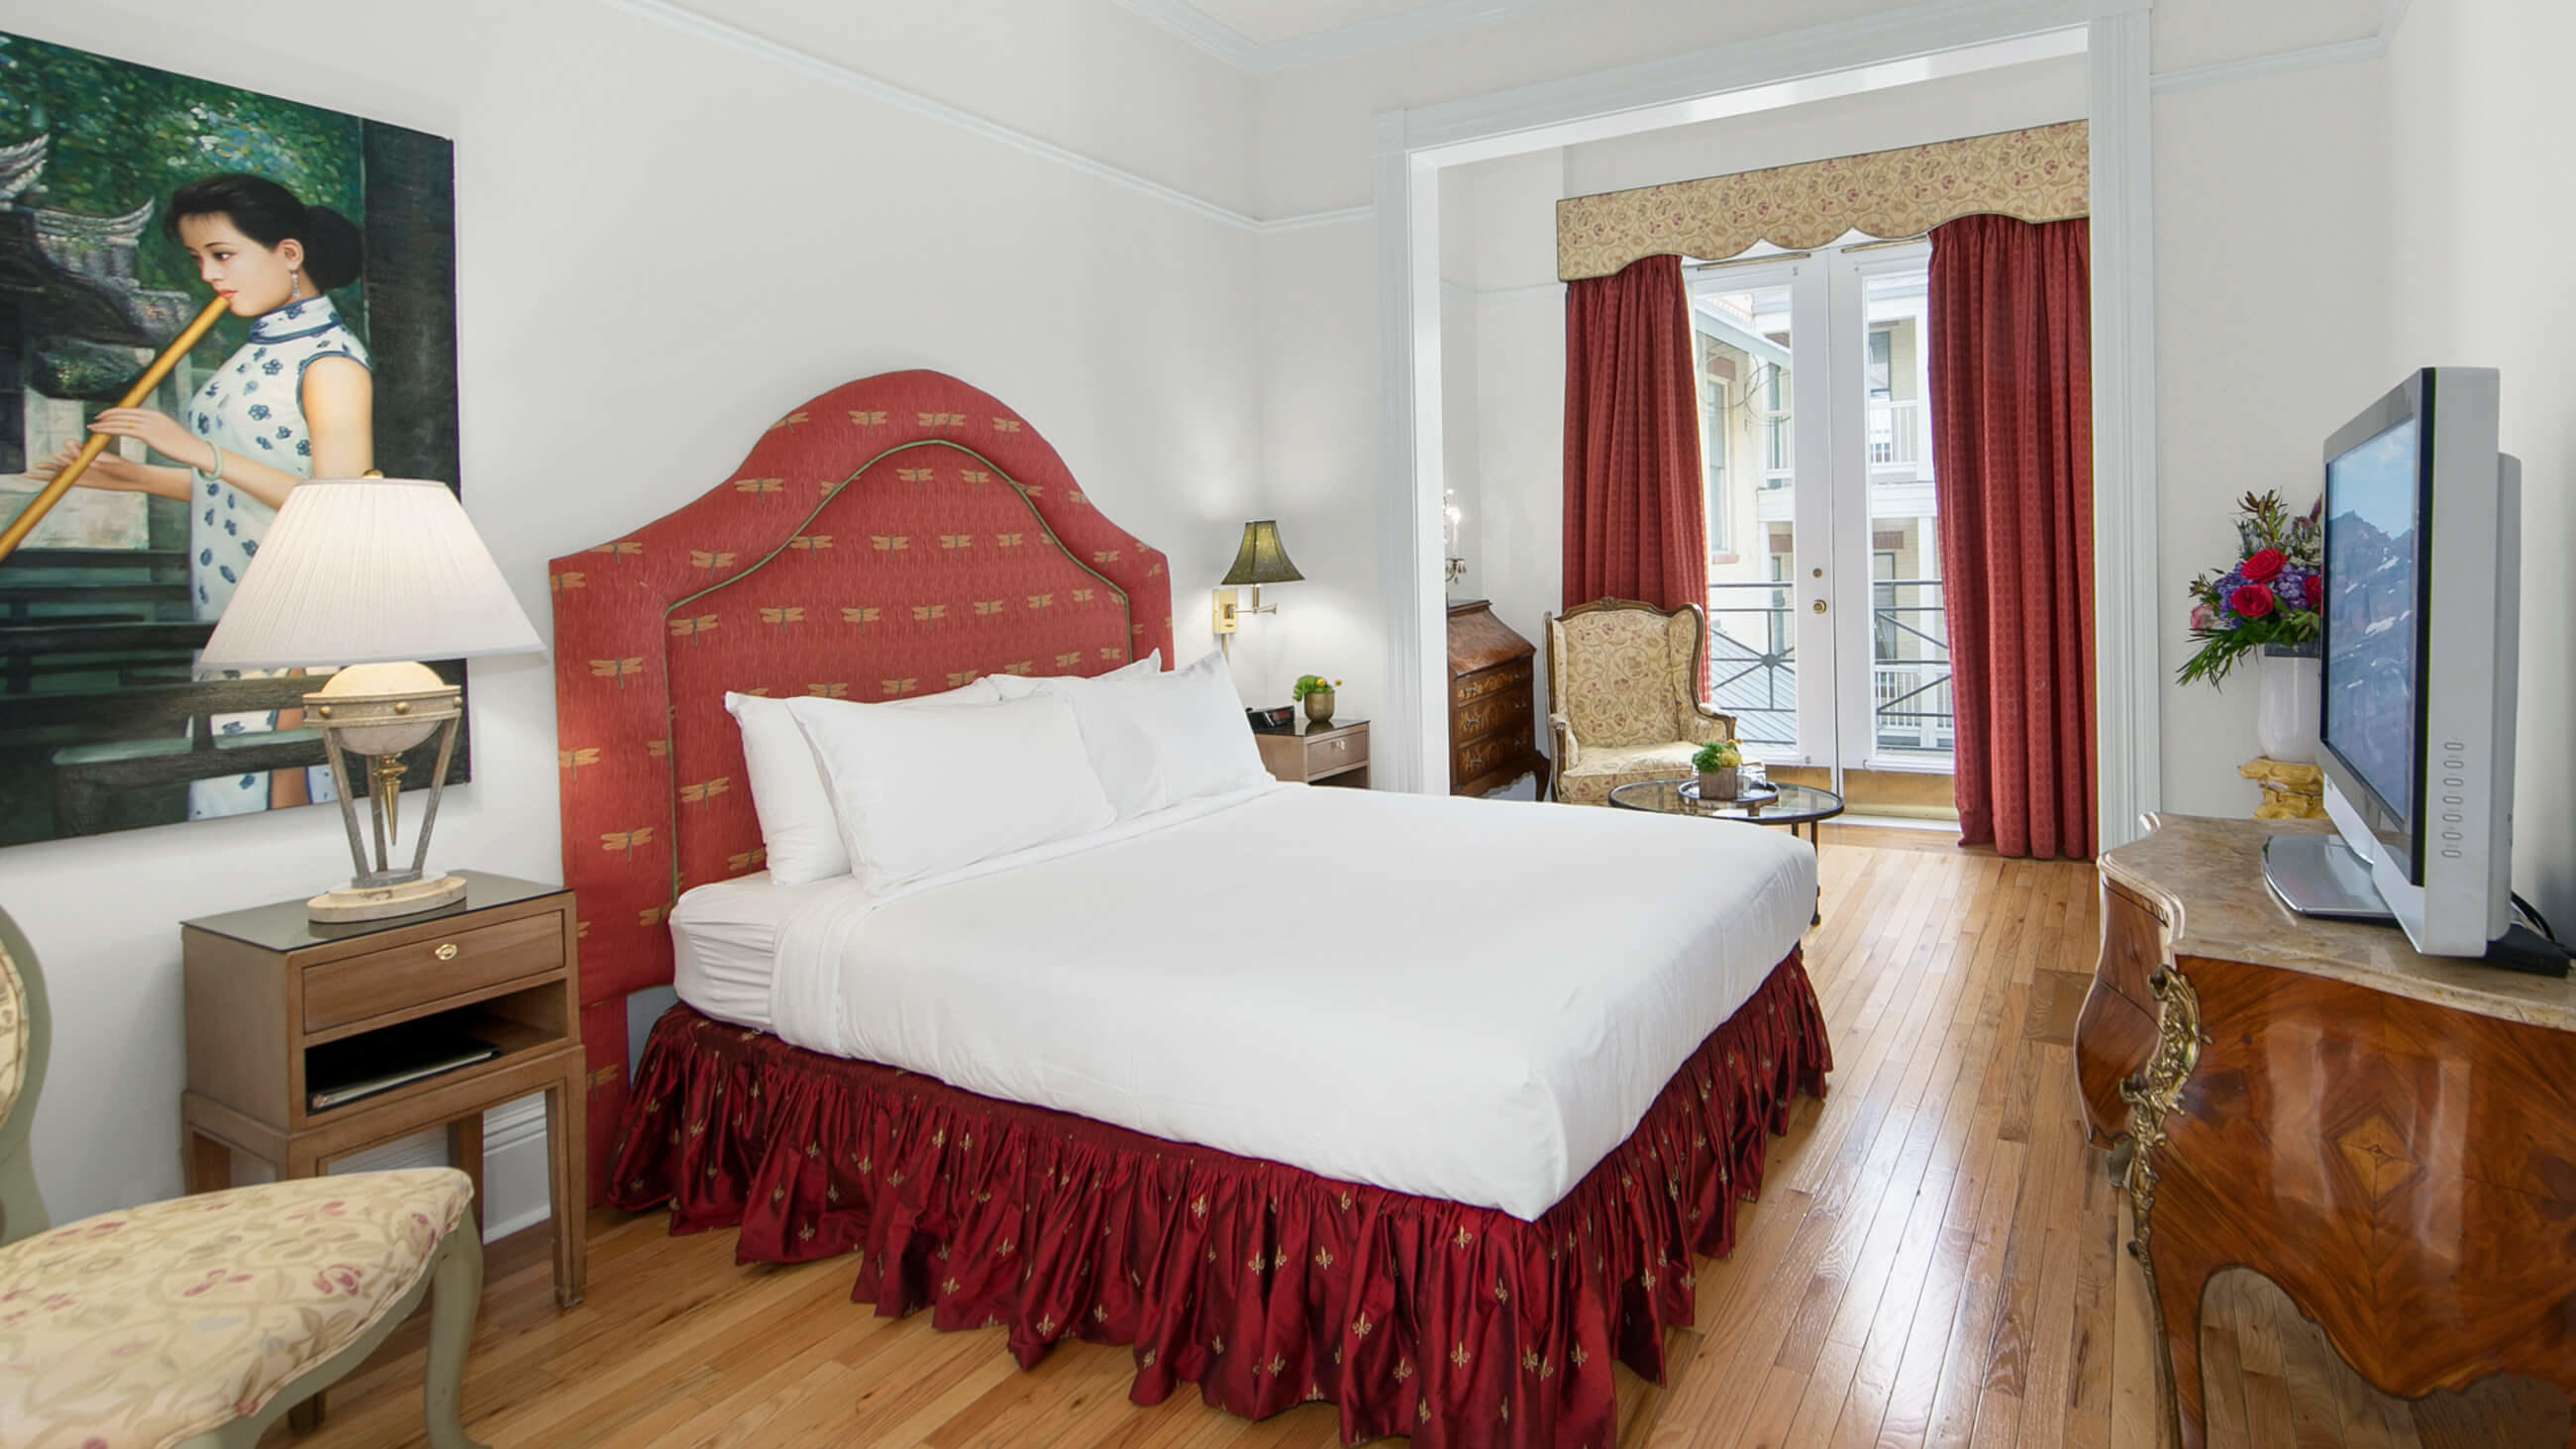 Deluxe Queen Room at Fairmount Hotel